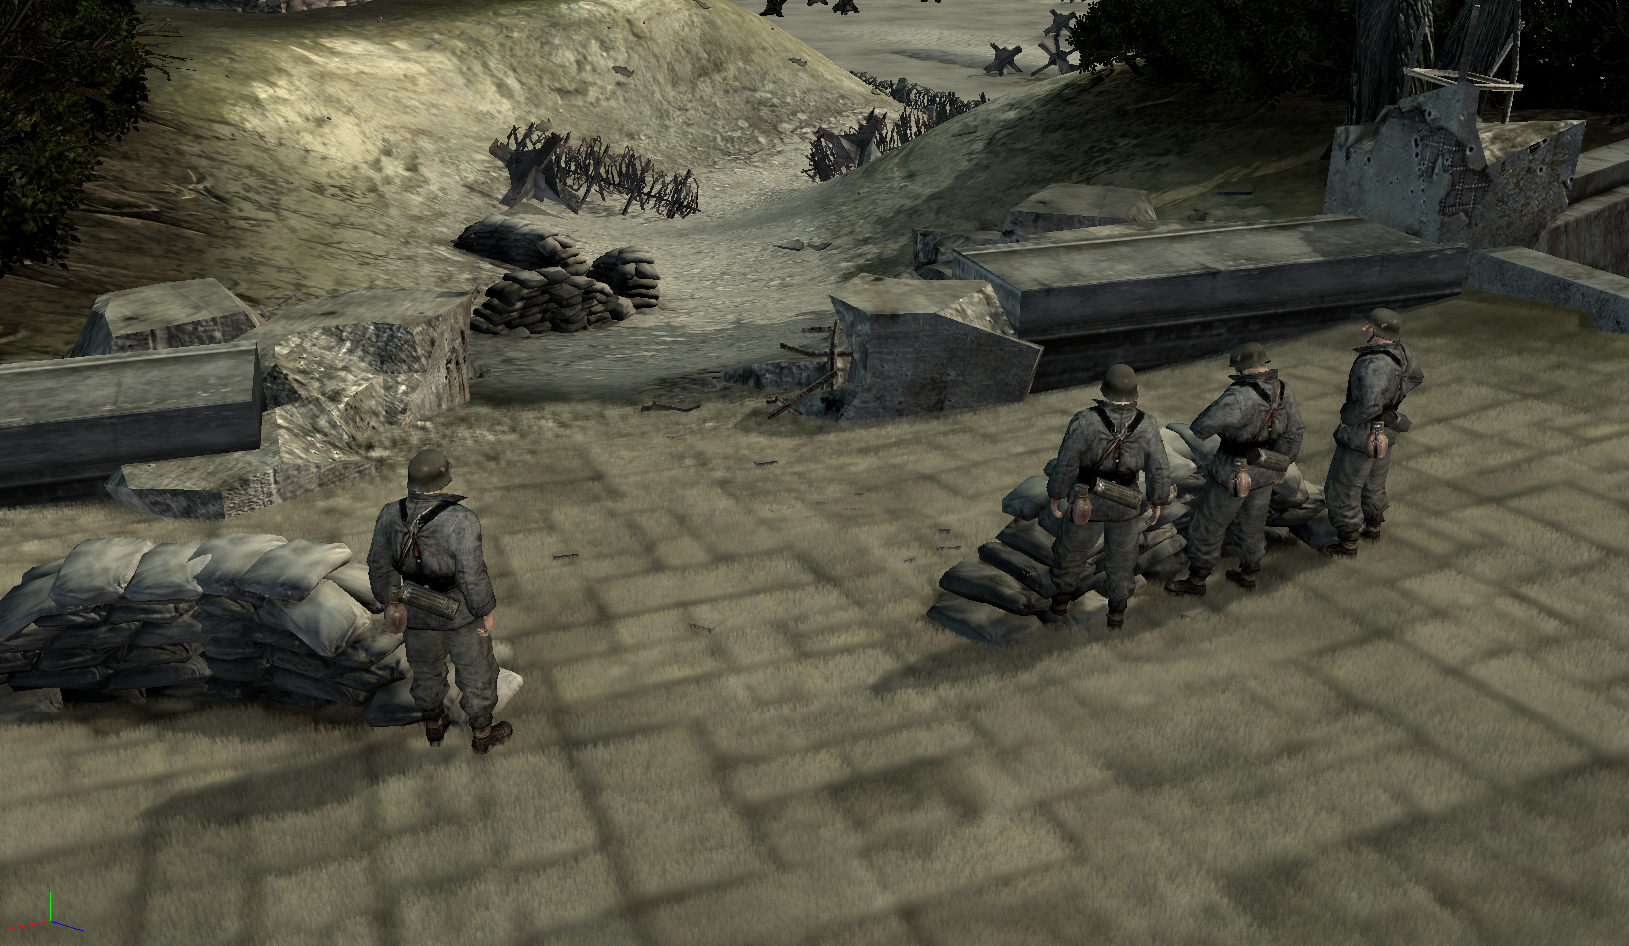 d day map fictional ish image company of heroes canada at war